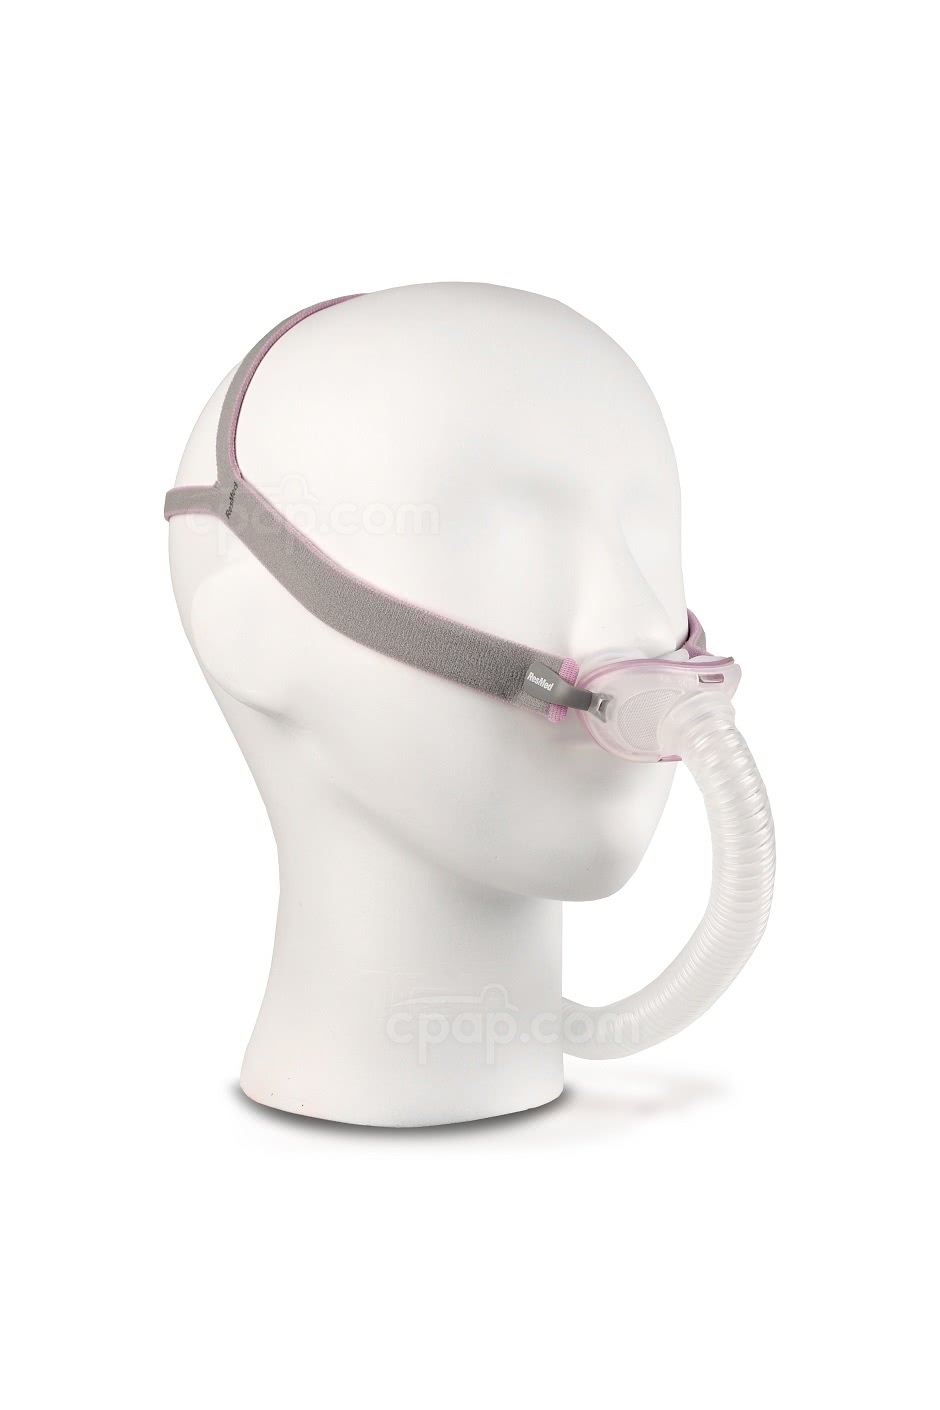 Airfit p10 cpap mask